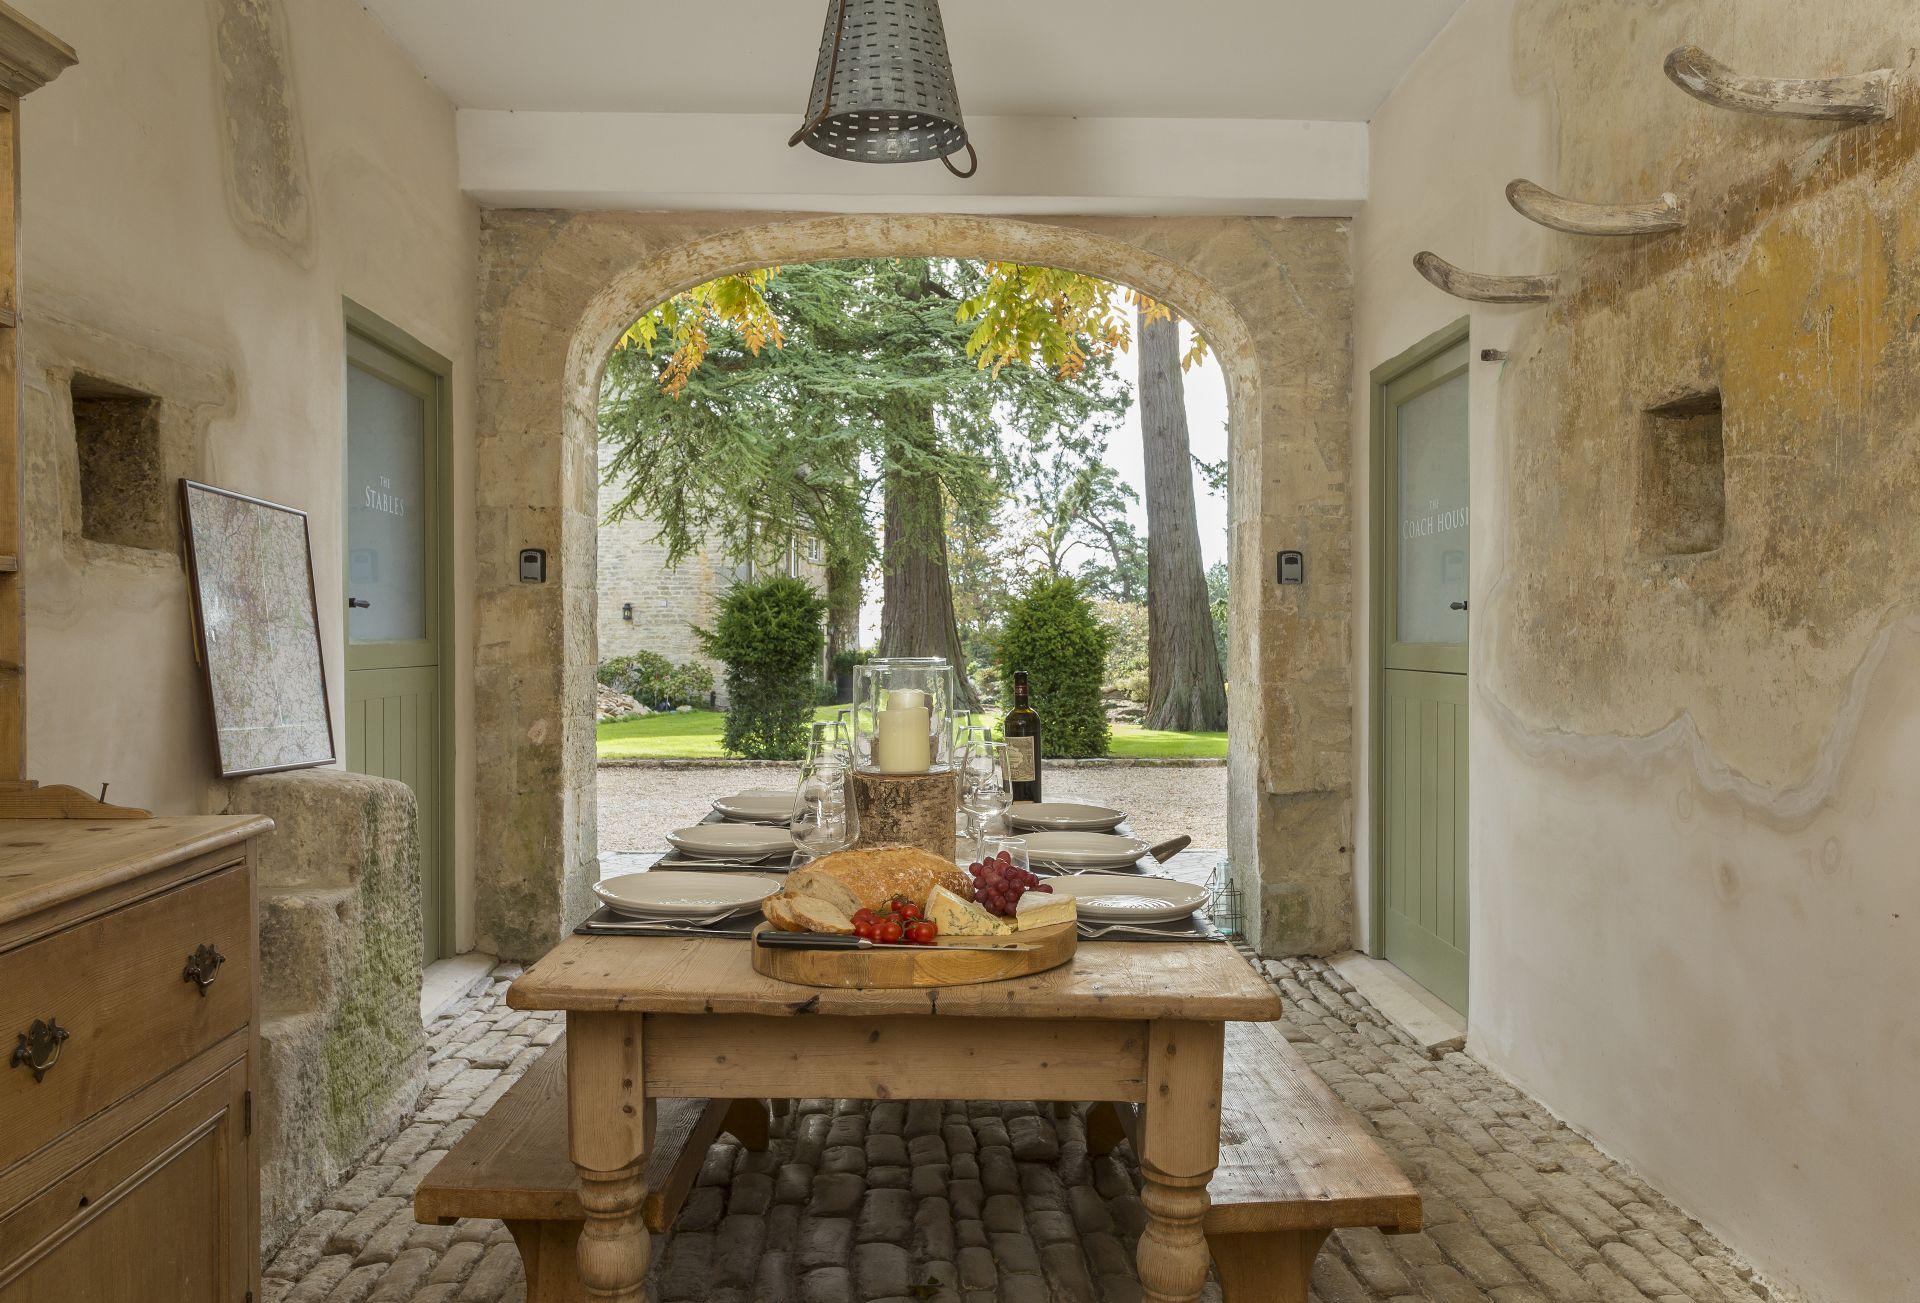 Groups of eight staying at both The Stables and The Coach House can enjoy alfresco dining together